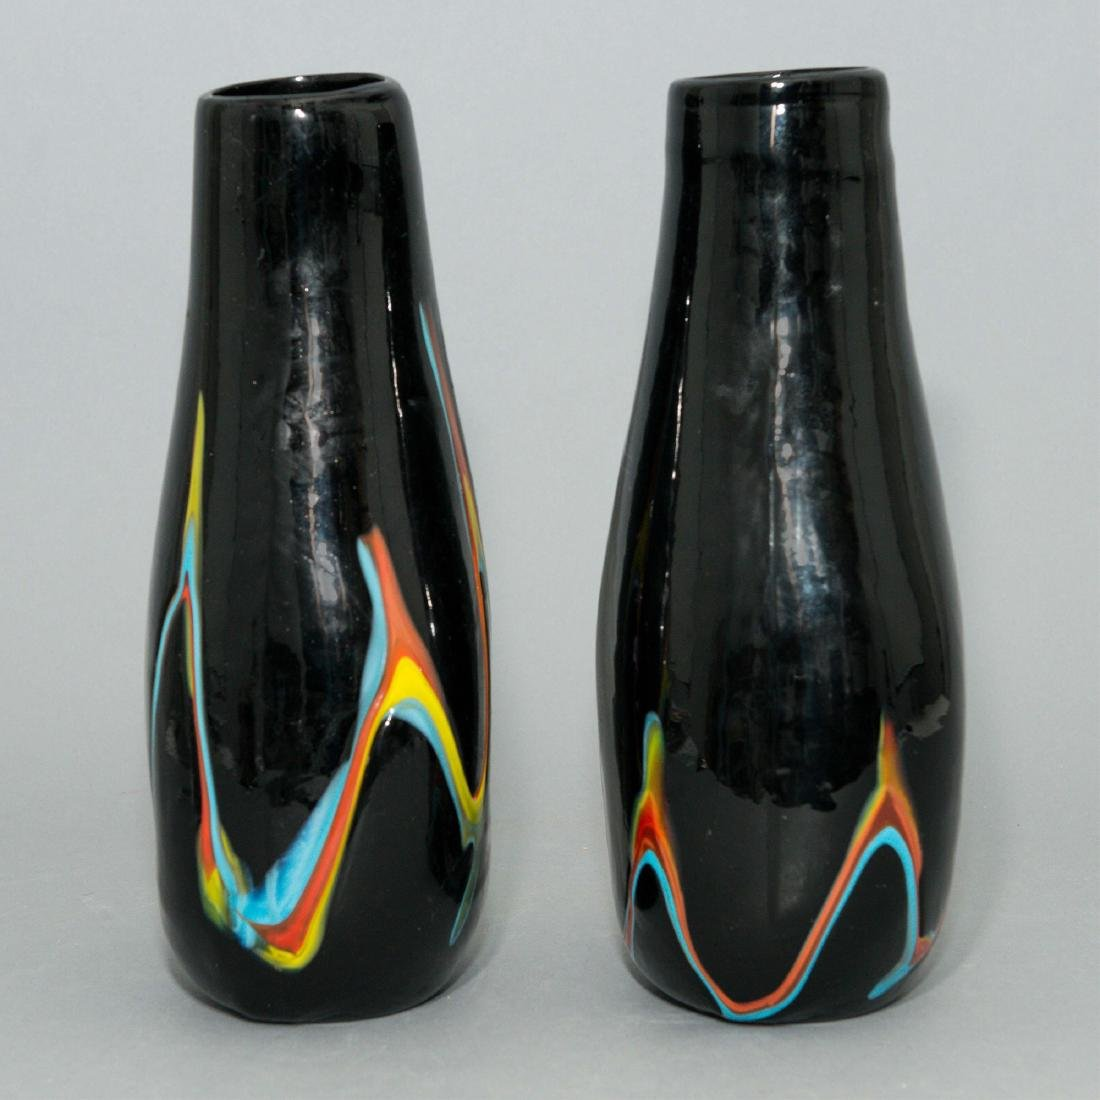 PAIR OF HAND-BLOWN AMERICAN DECORATIVE GLASS VASES - 2